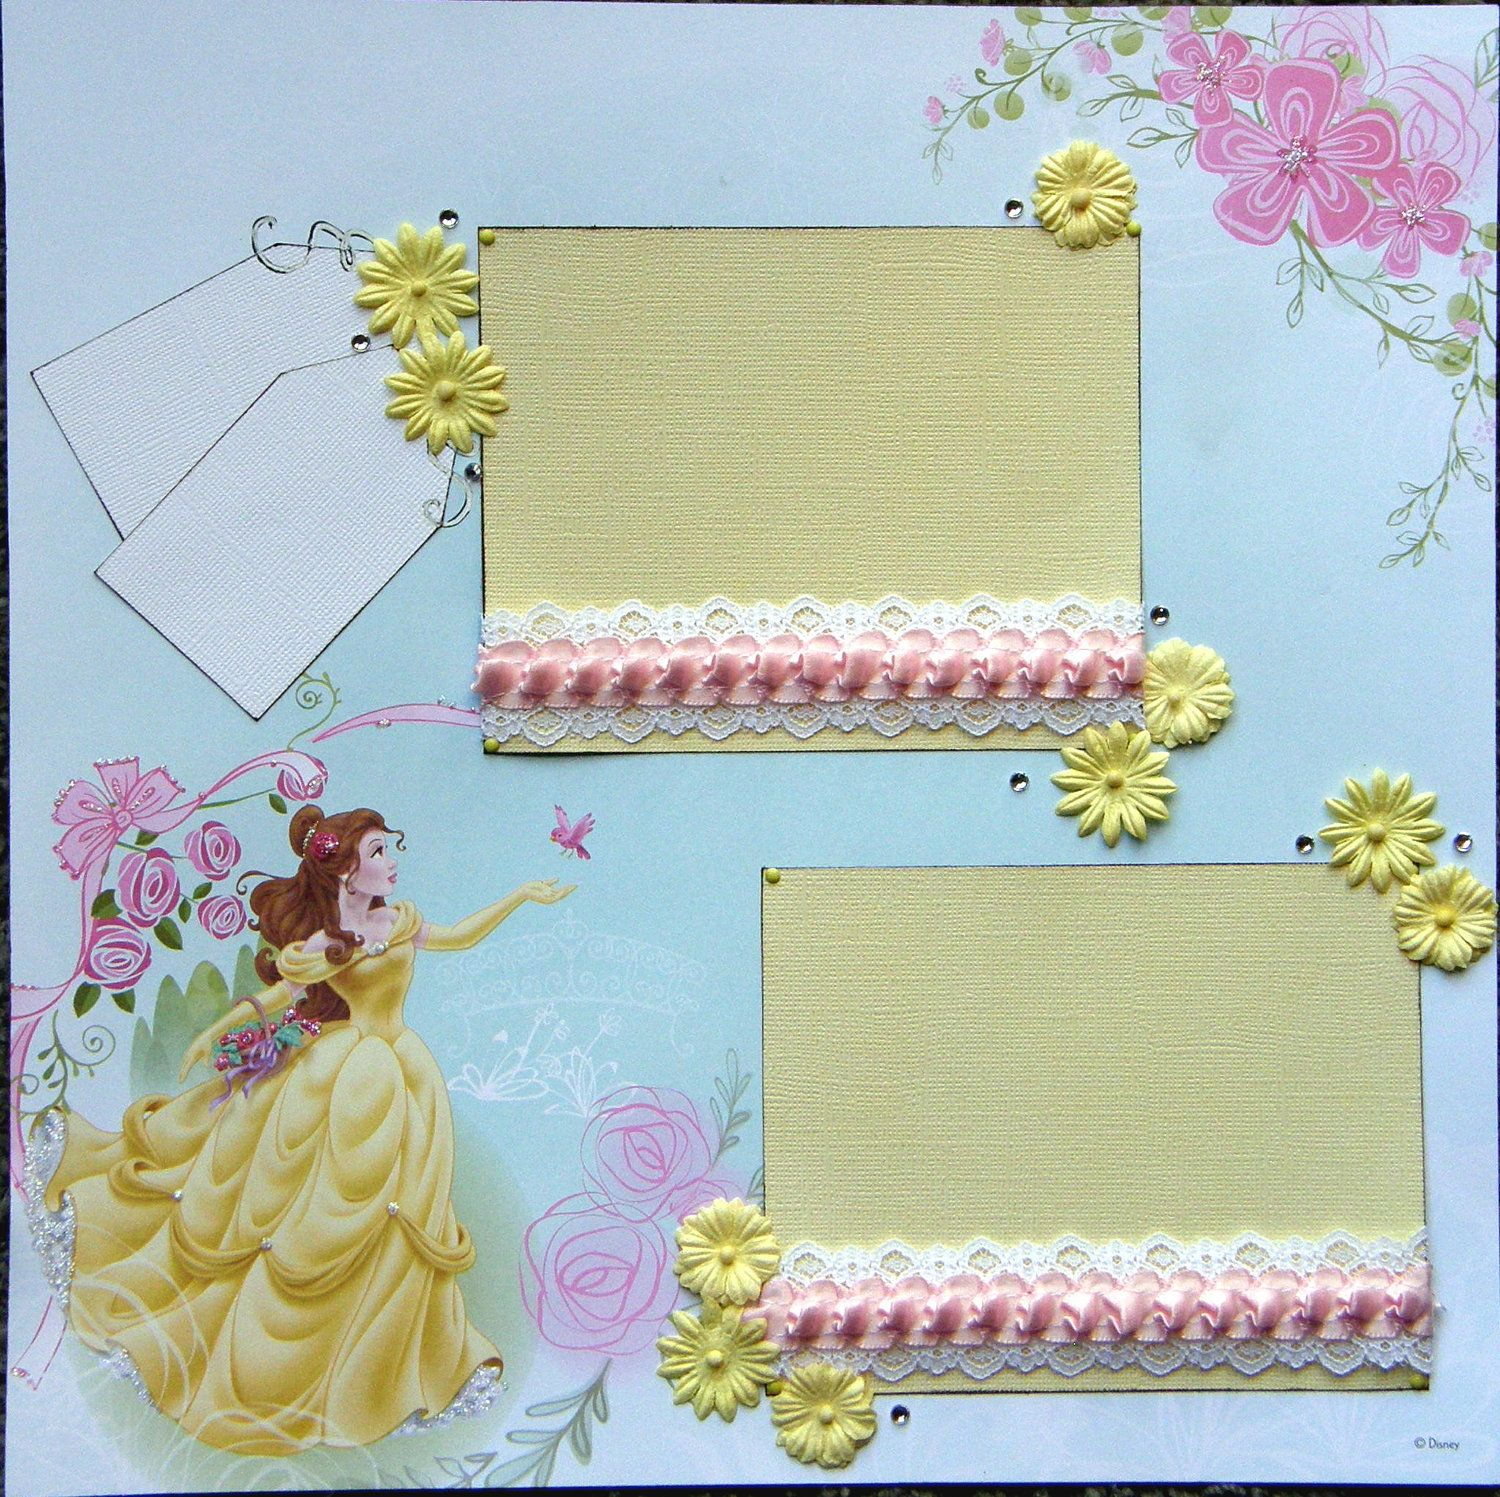 Scrapbook ideas names - 12x12 Premade Scrapbook Layout Featuring Disney S Belle Add A Name For Free